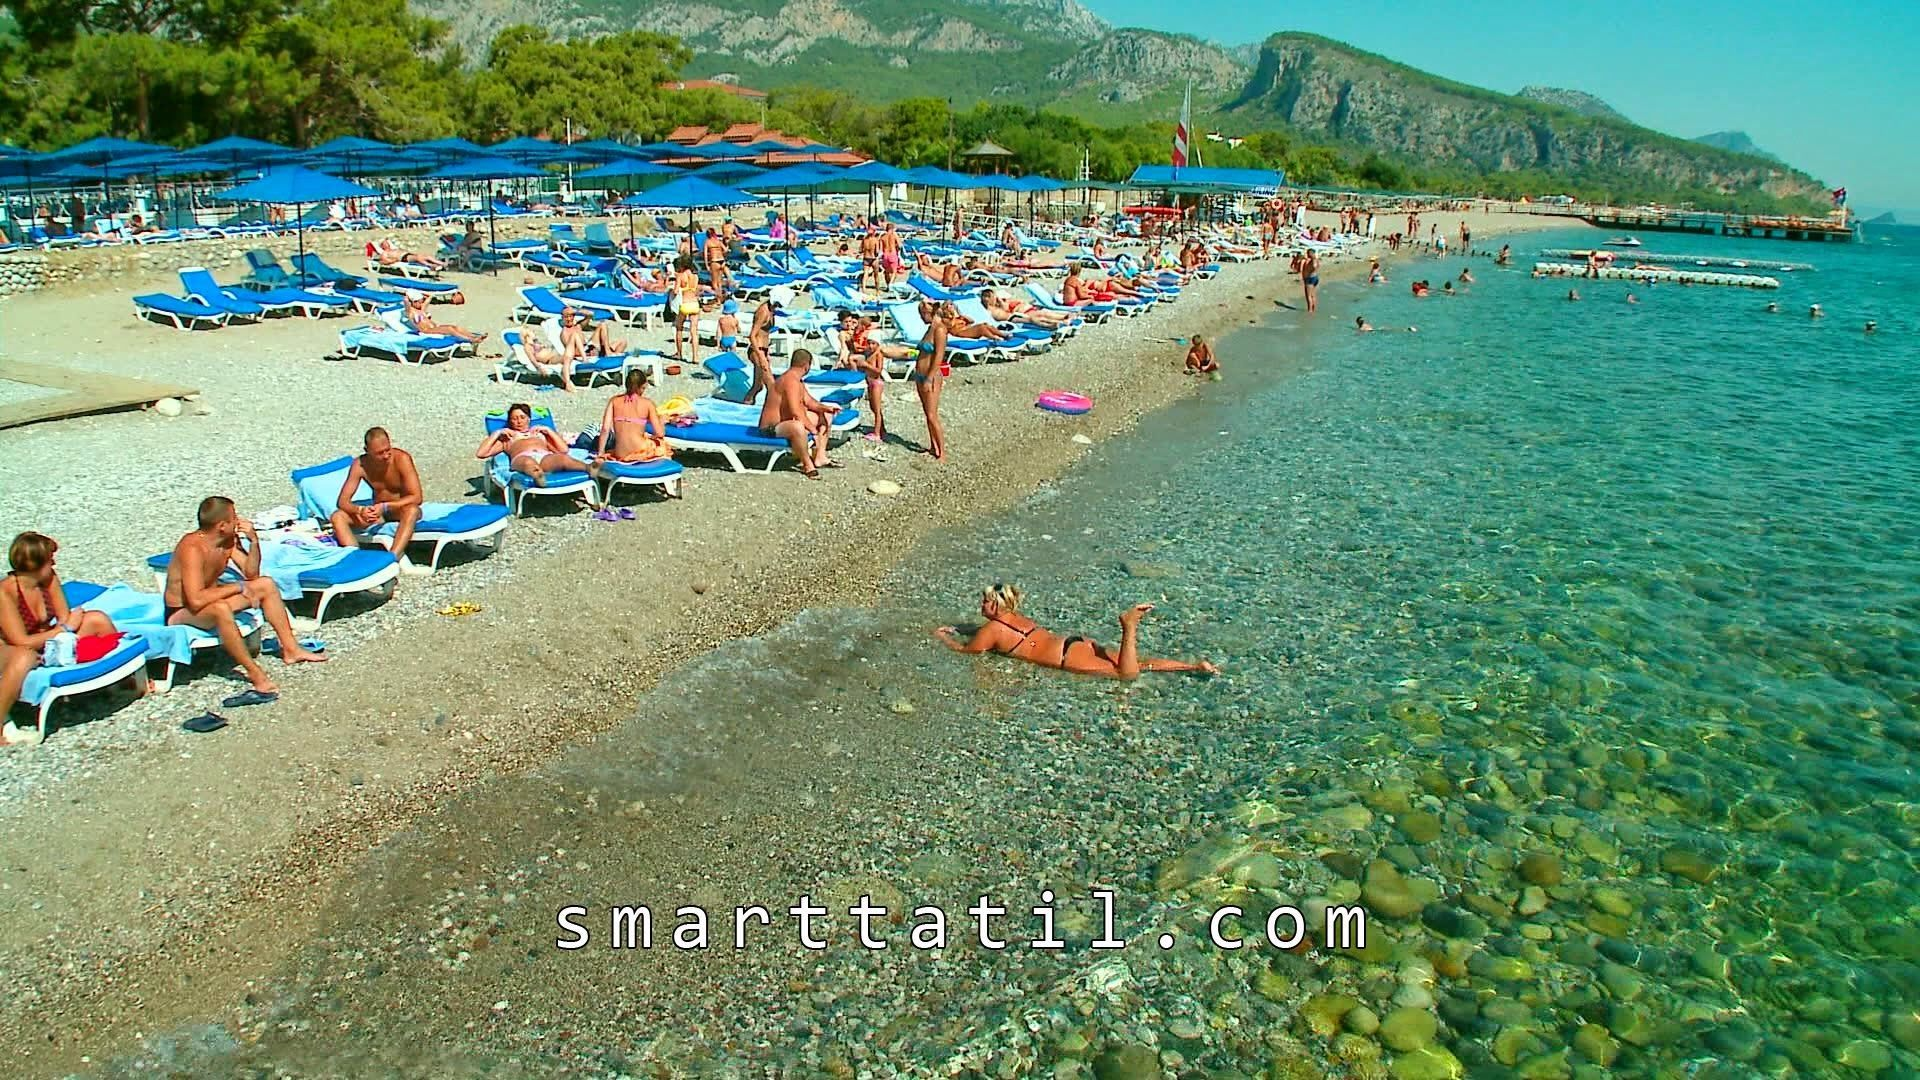 CATAMARAN HOTEL, Kemer, SMART TATİL